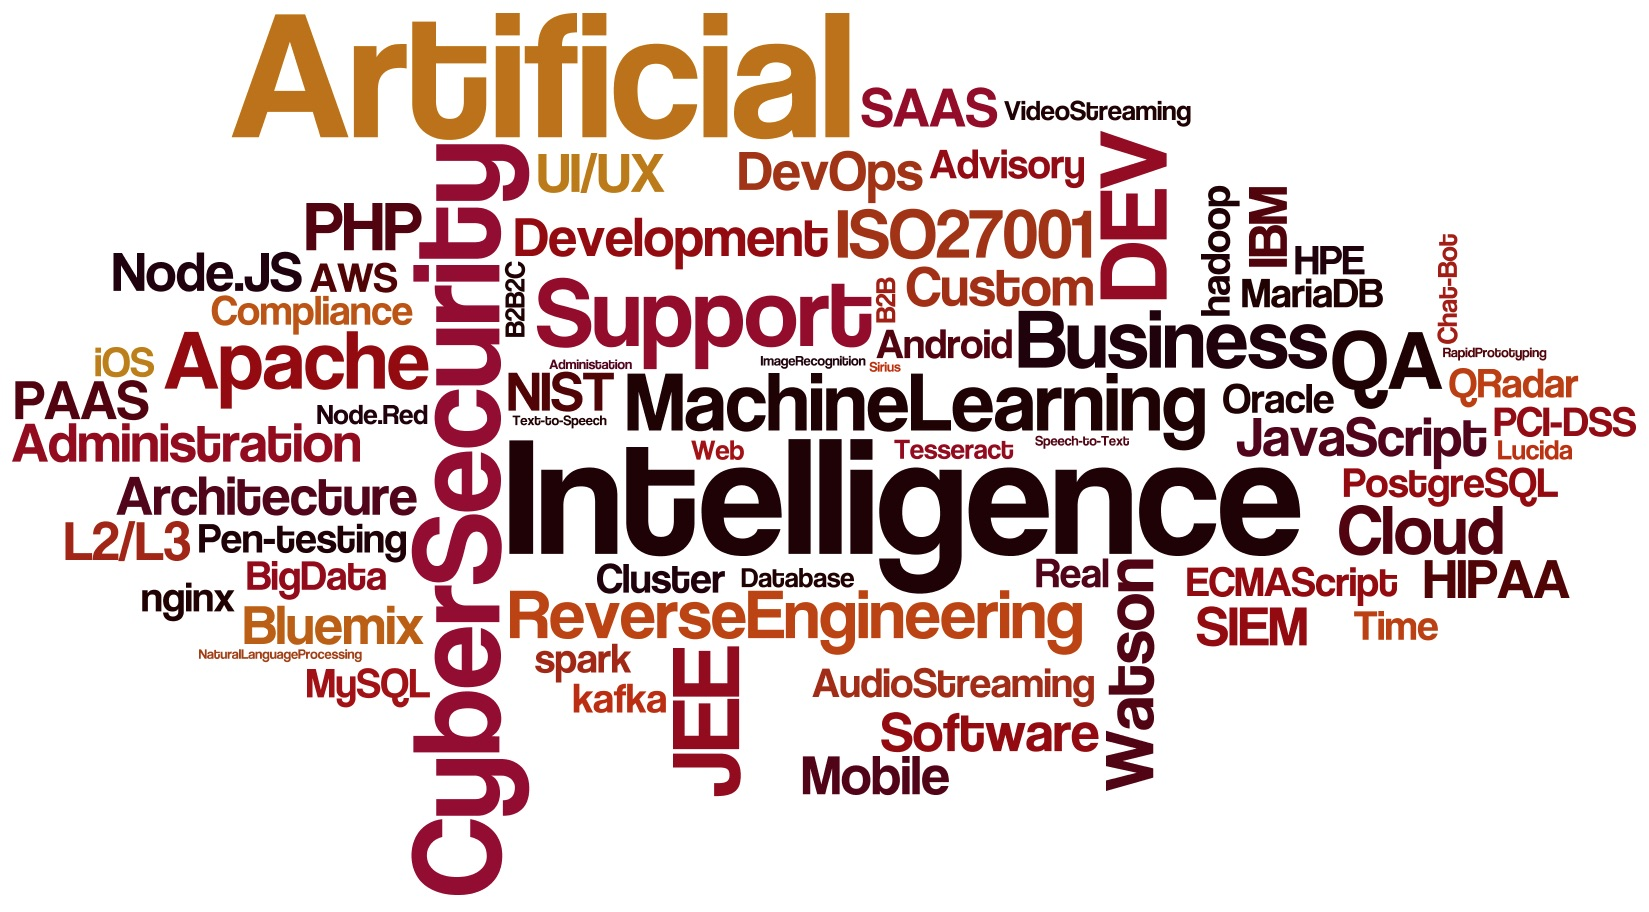 Artificial Intelligence Big Data  Machine Learning SAAS PAAS Speech-to-Text Text-to-Speech Cloud B2B B2B2C Image Recognition Natural Language Processing Rapid Prototyping IBM Bluemix Watson Tesseract Lucida Sirius Android iOS Mobile Web Chat-Bot JEE PHP JavaScript ECMAScript Node.JS Node.Red DevOps Support L2/L3 Video Streaming Audio Streaming Business Intelligence Business Advisory QA DEV R&D Artificial Architecture UI/UX Custom Software Development Database Administration Cluster Administration Support Cloud AWS Oracle PostgreSQL MySQL MariaDB Real Time Apache nginx kafka spark hadoop 